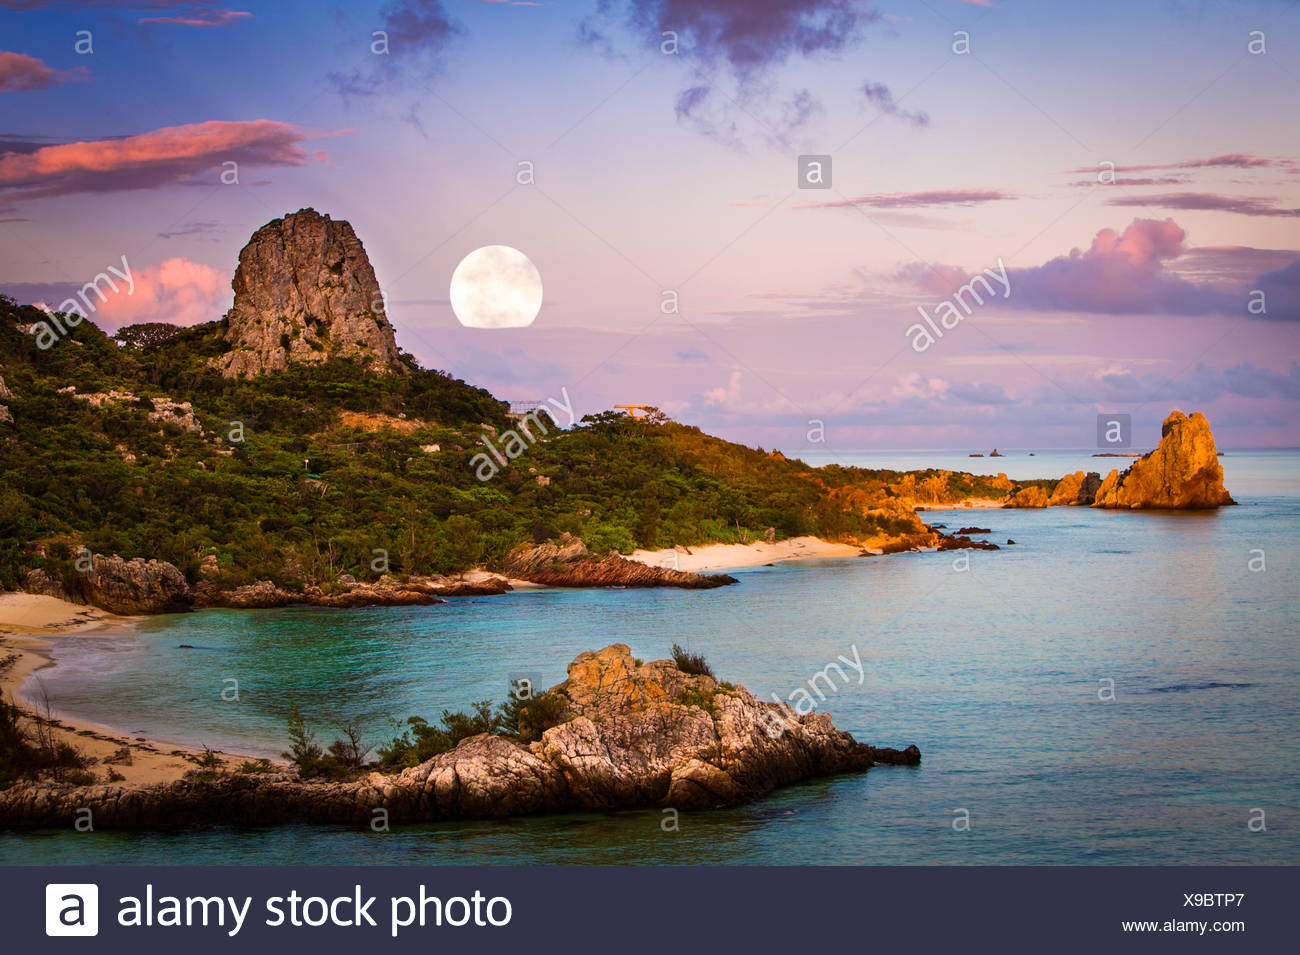 Moon over coastal landscape, okinawa, japan - Stock Image